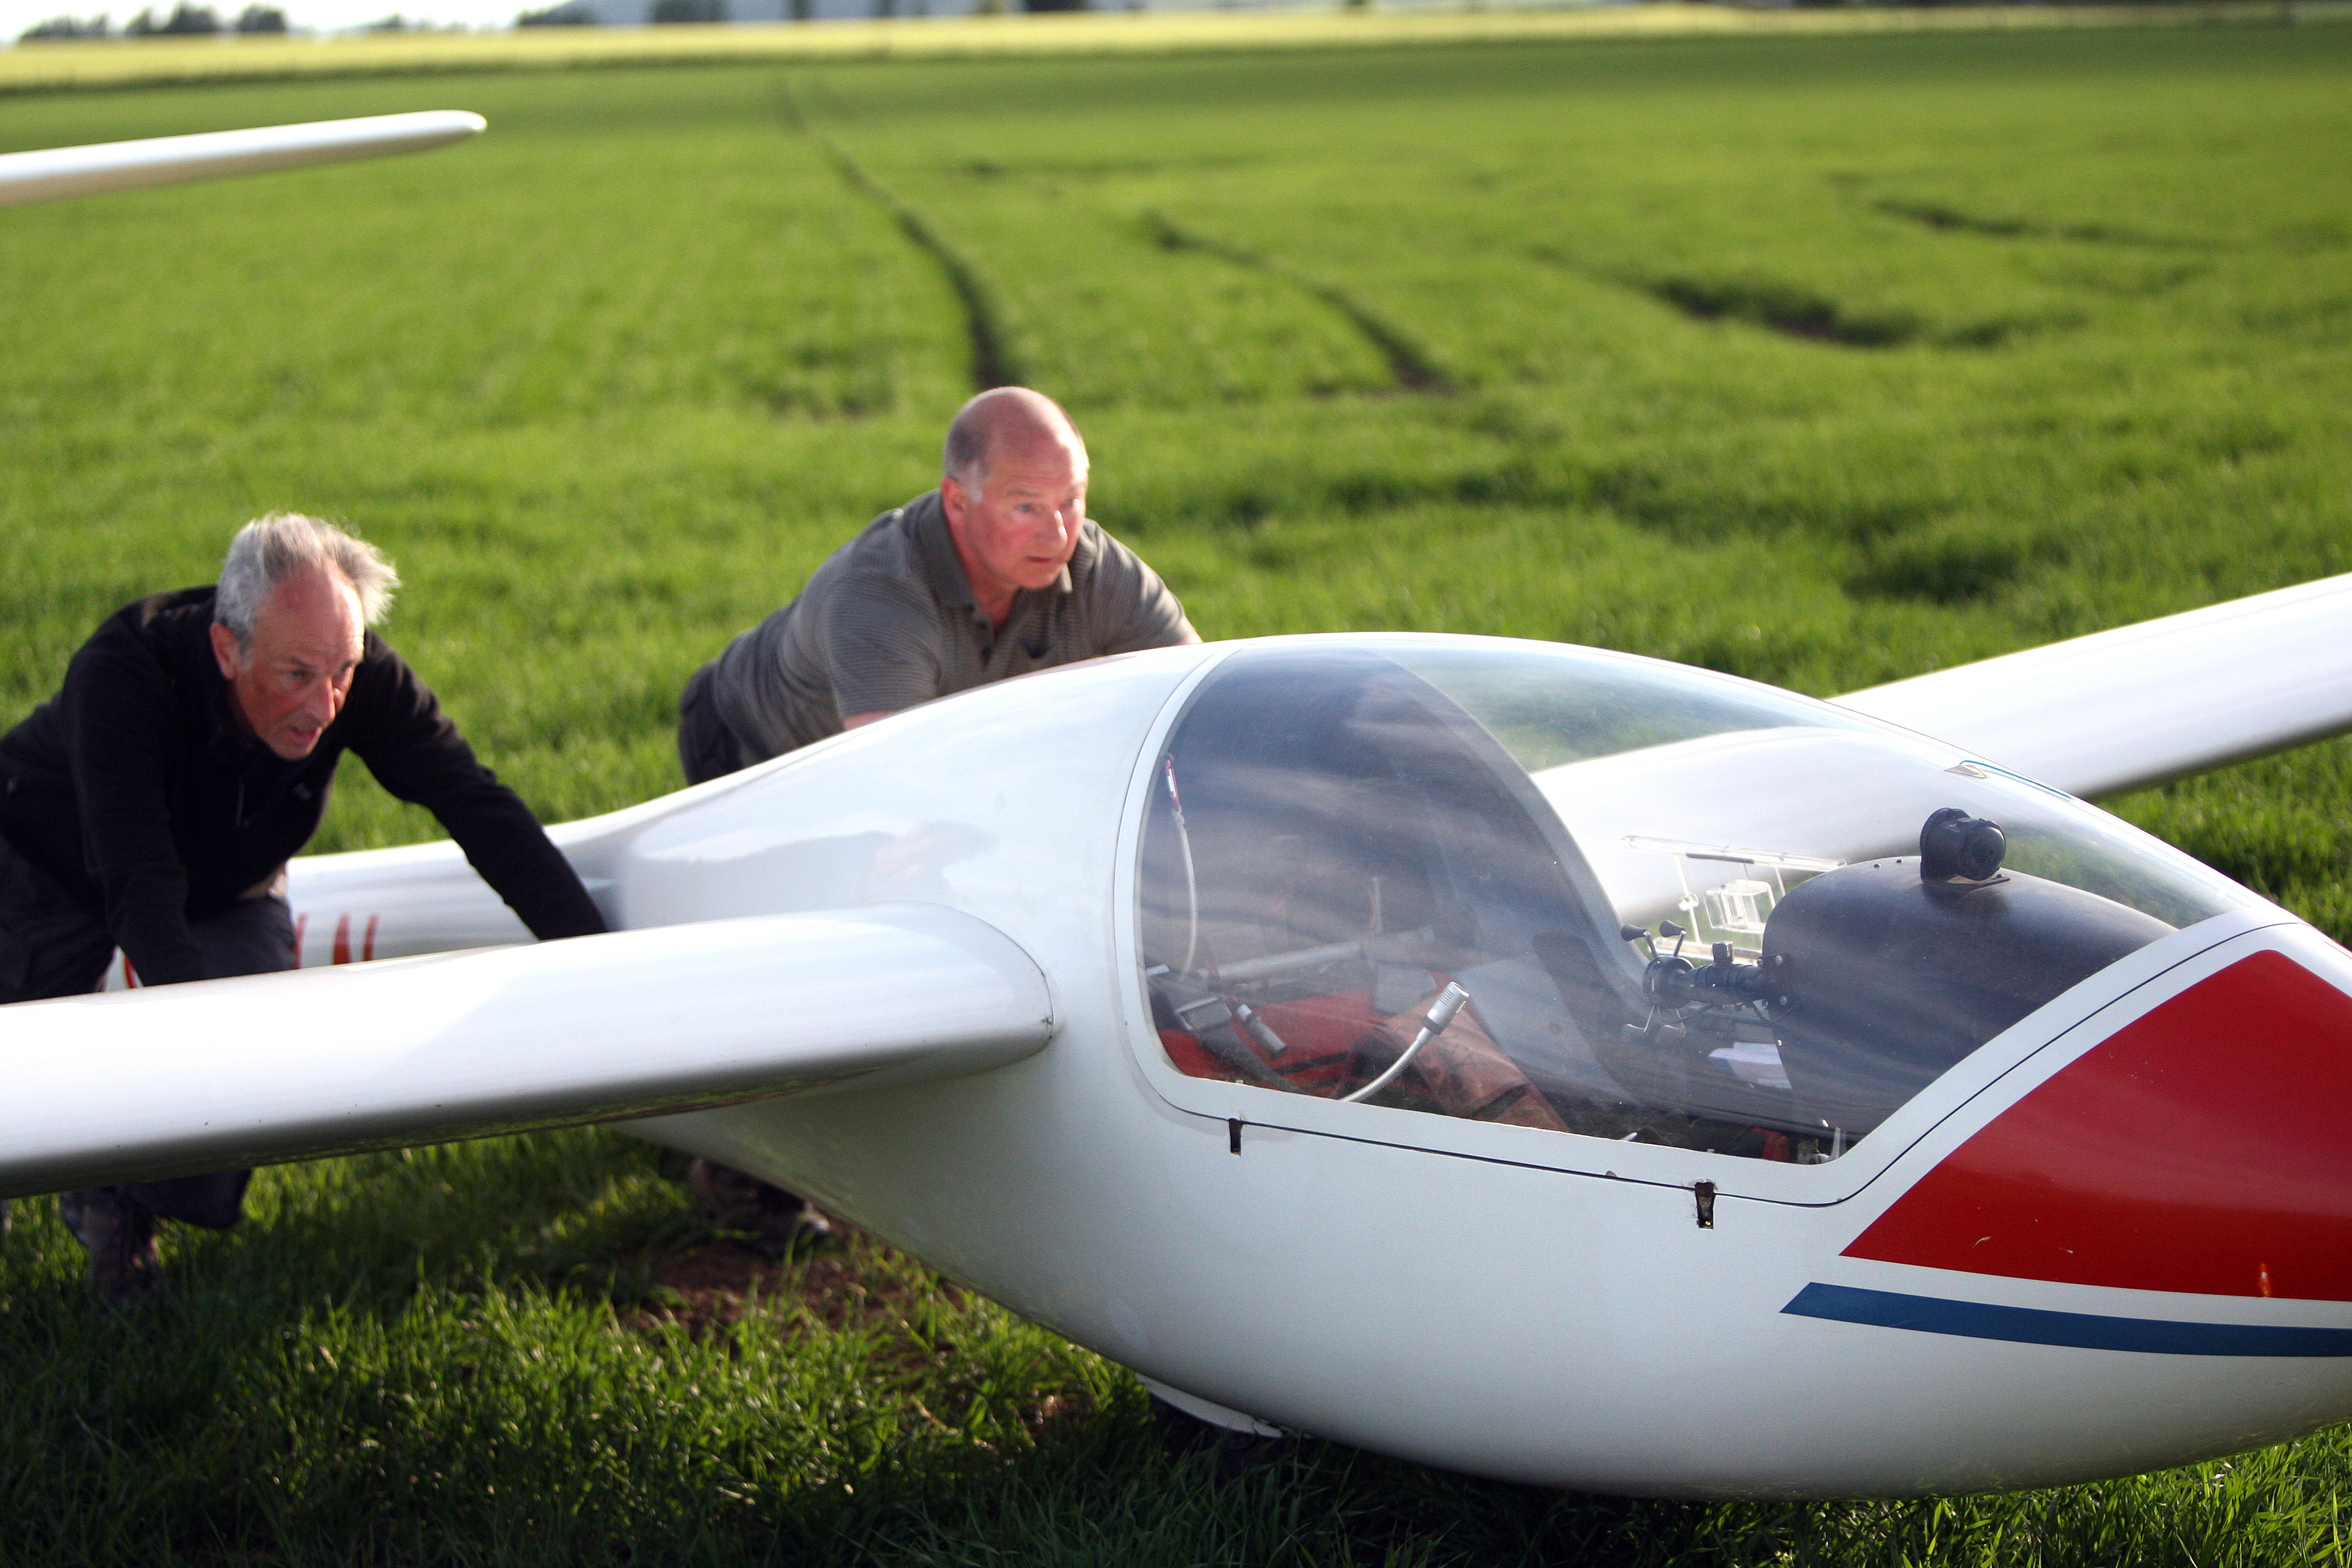 Members of the Bowland Forest Gliding Club help recover the glider.